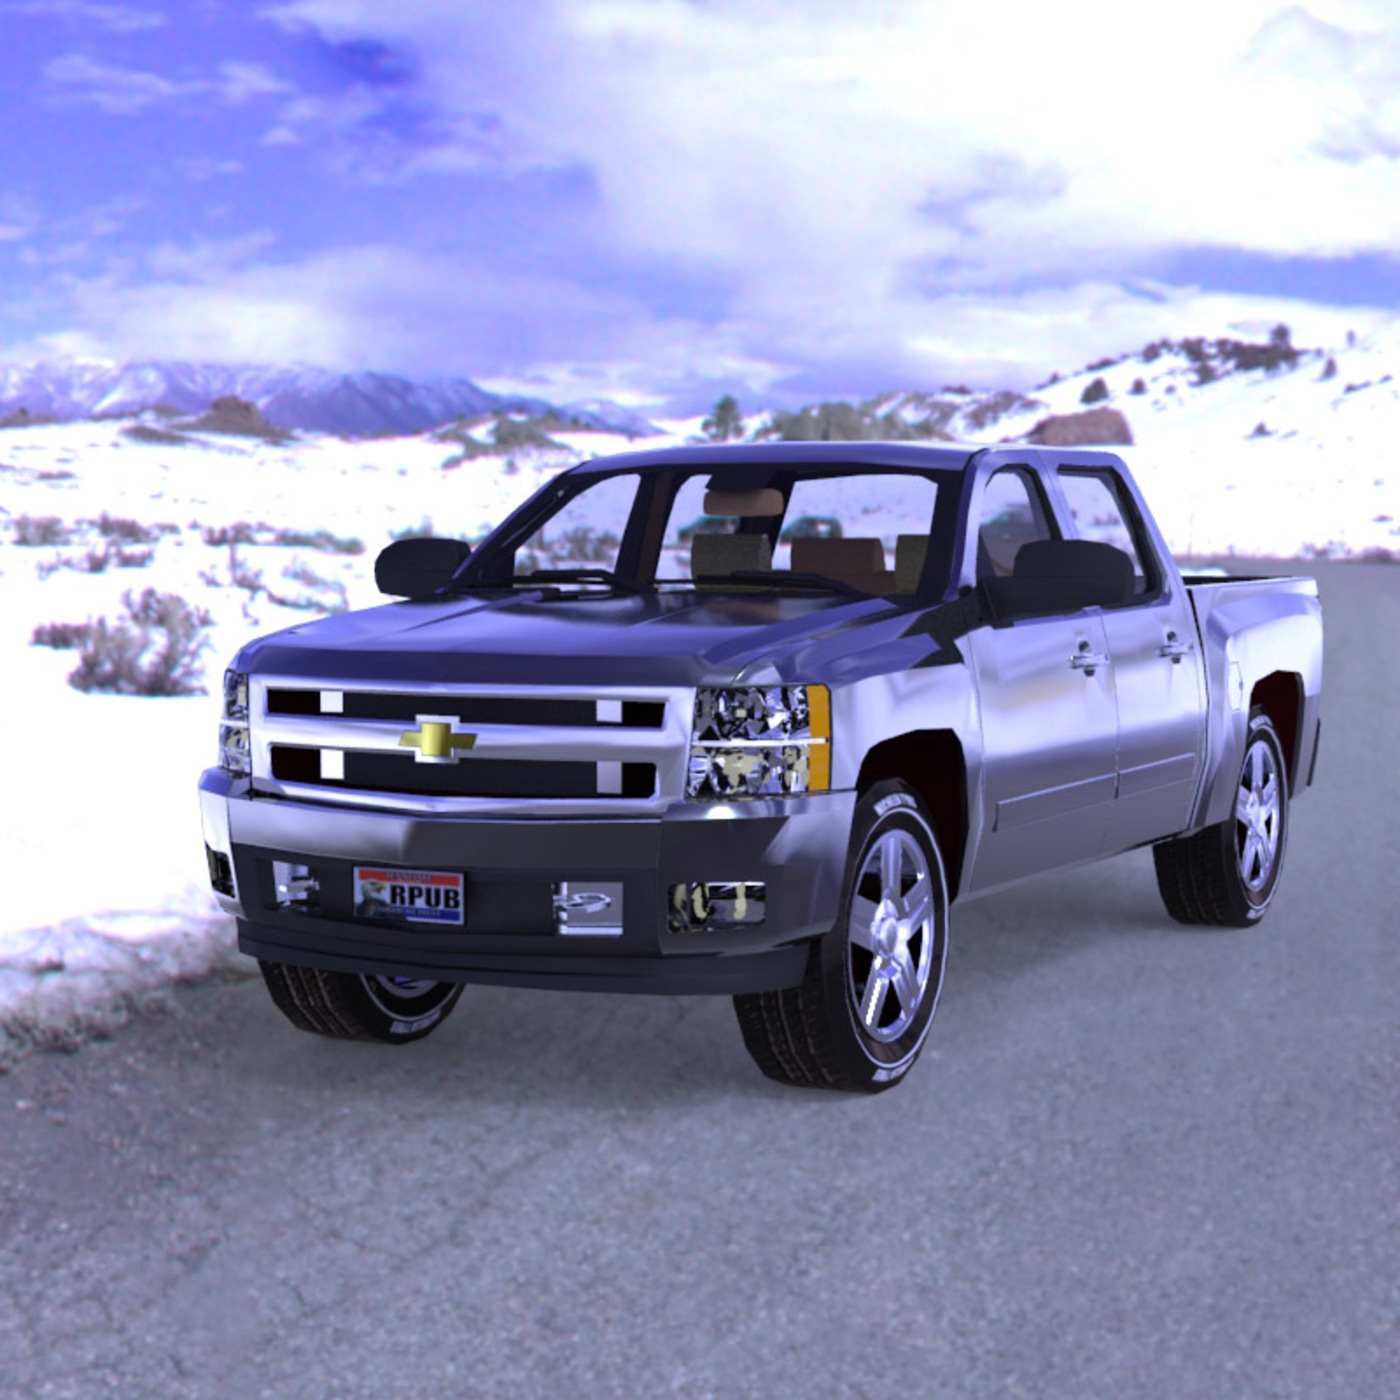 Silverado in the Snow